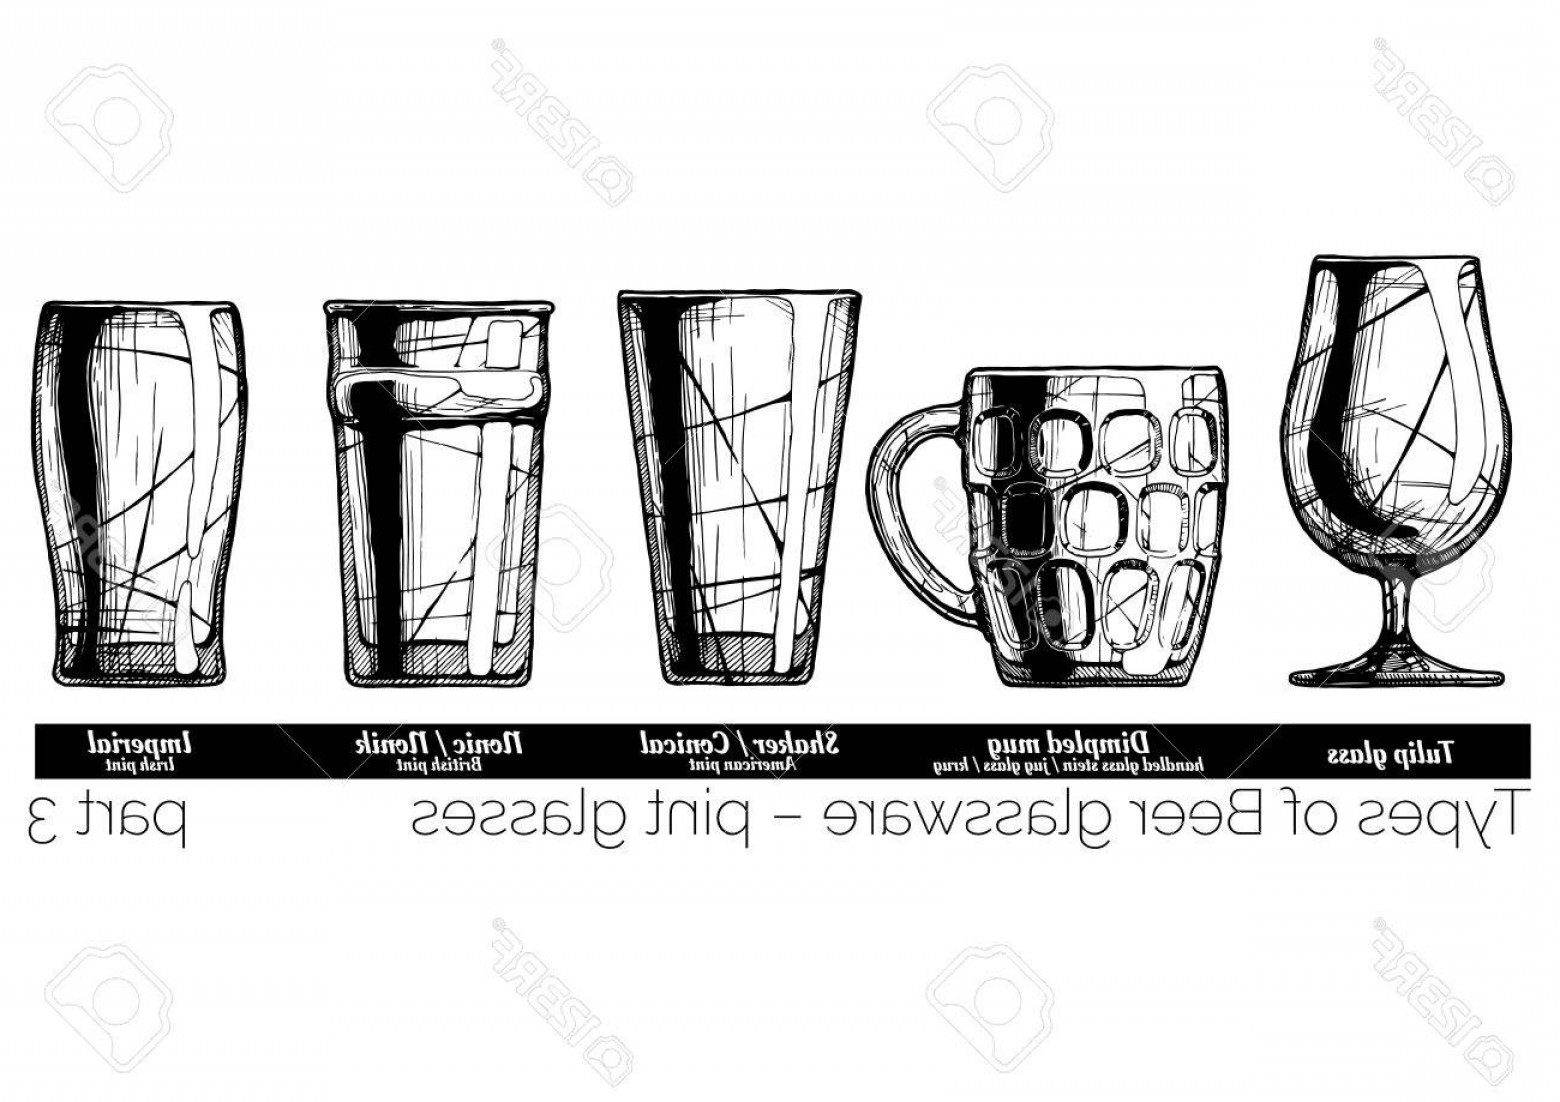 Beer Chalice Vector Logo: Photostock Vector Types Of Beer Glassware Pint Glasses Tulip Dimpled Conical Nonic And Imperial Pints Illustration Of